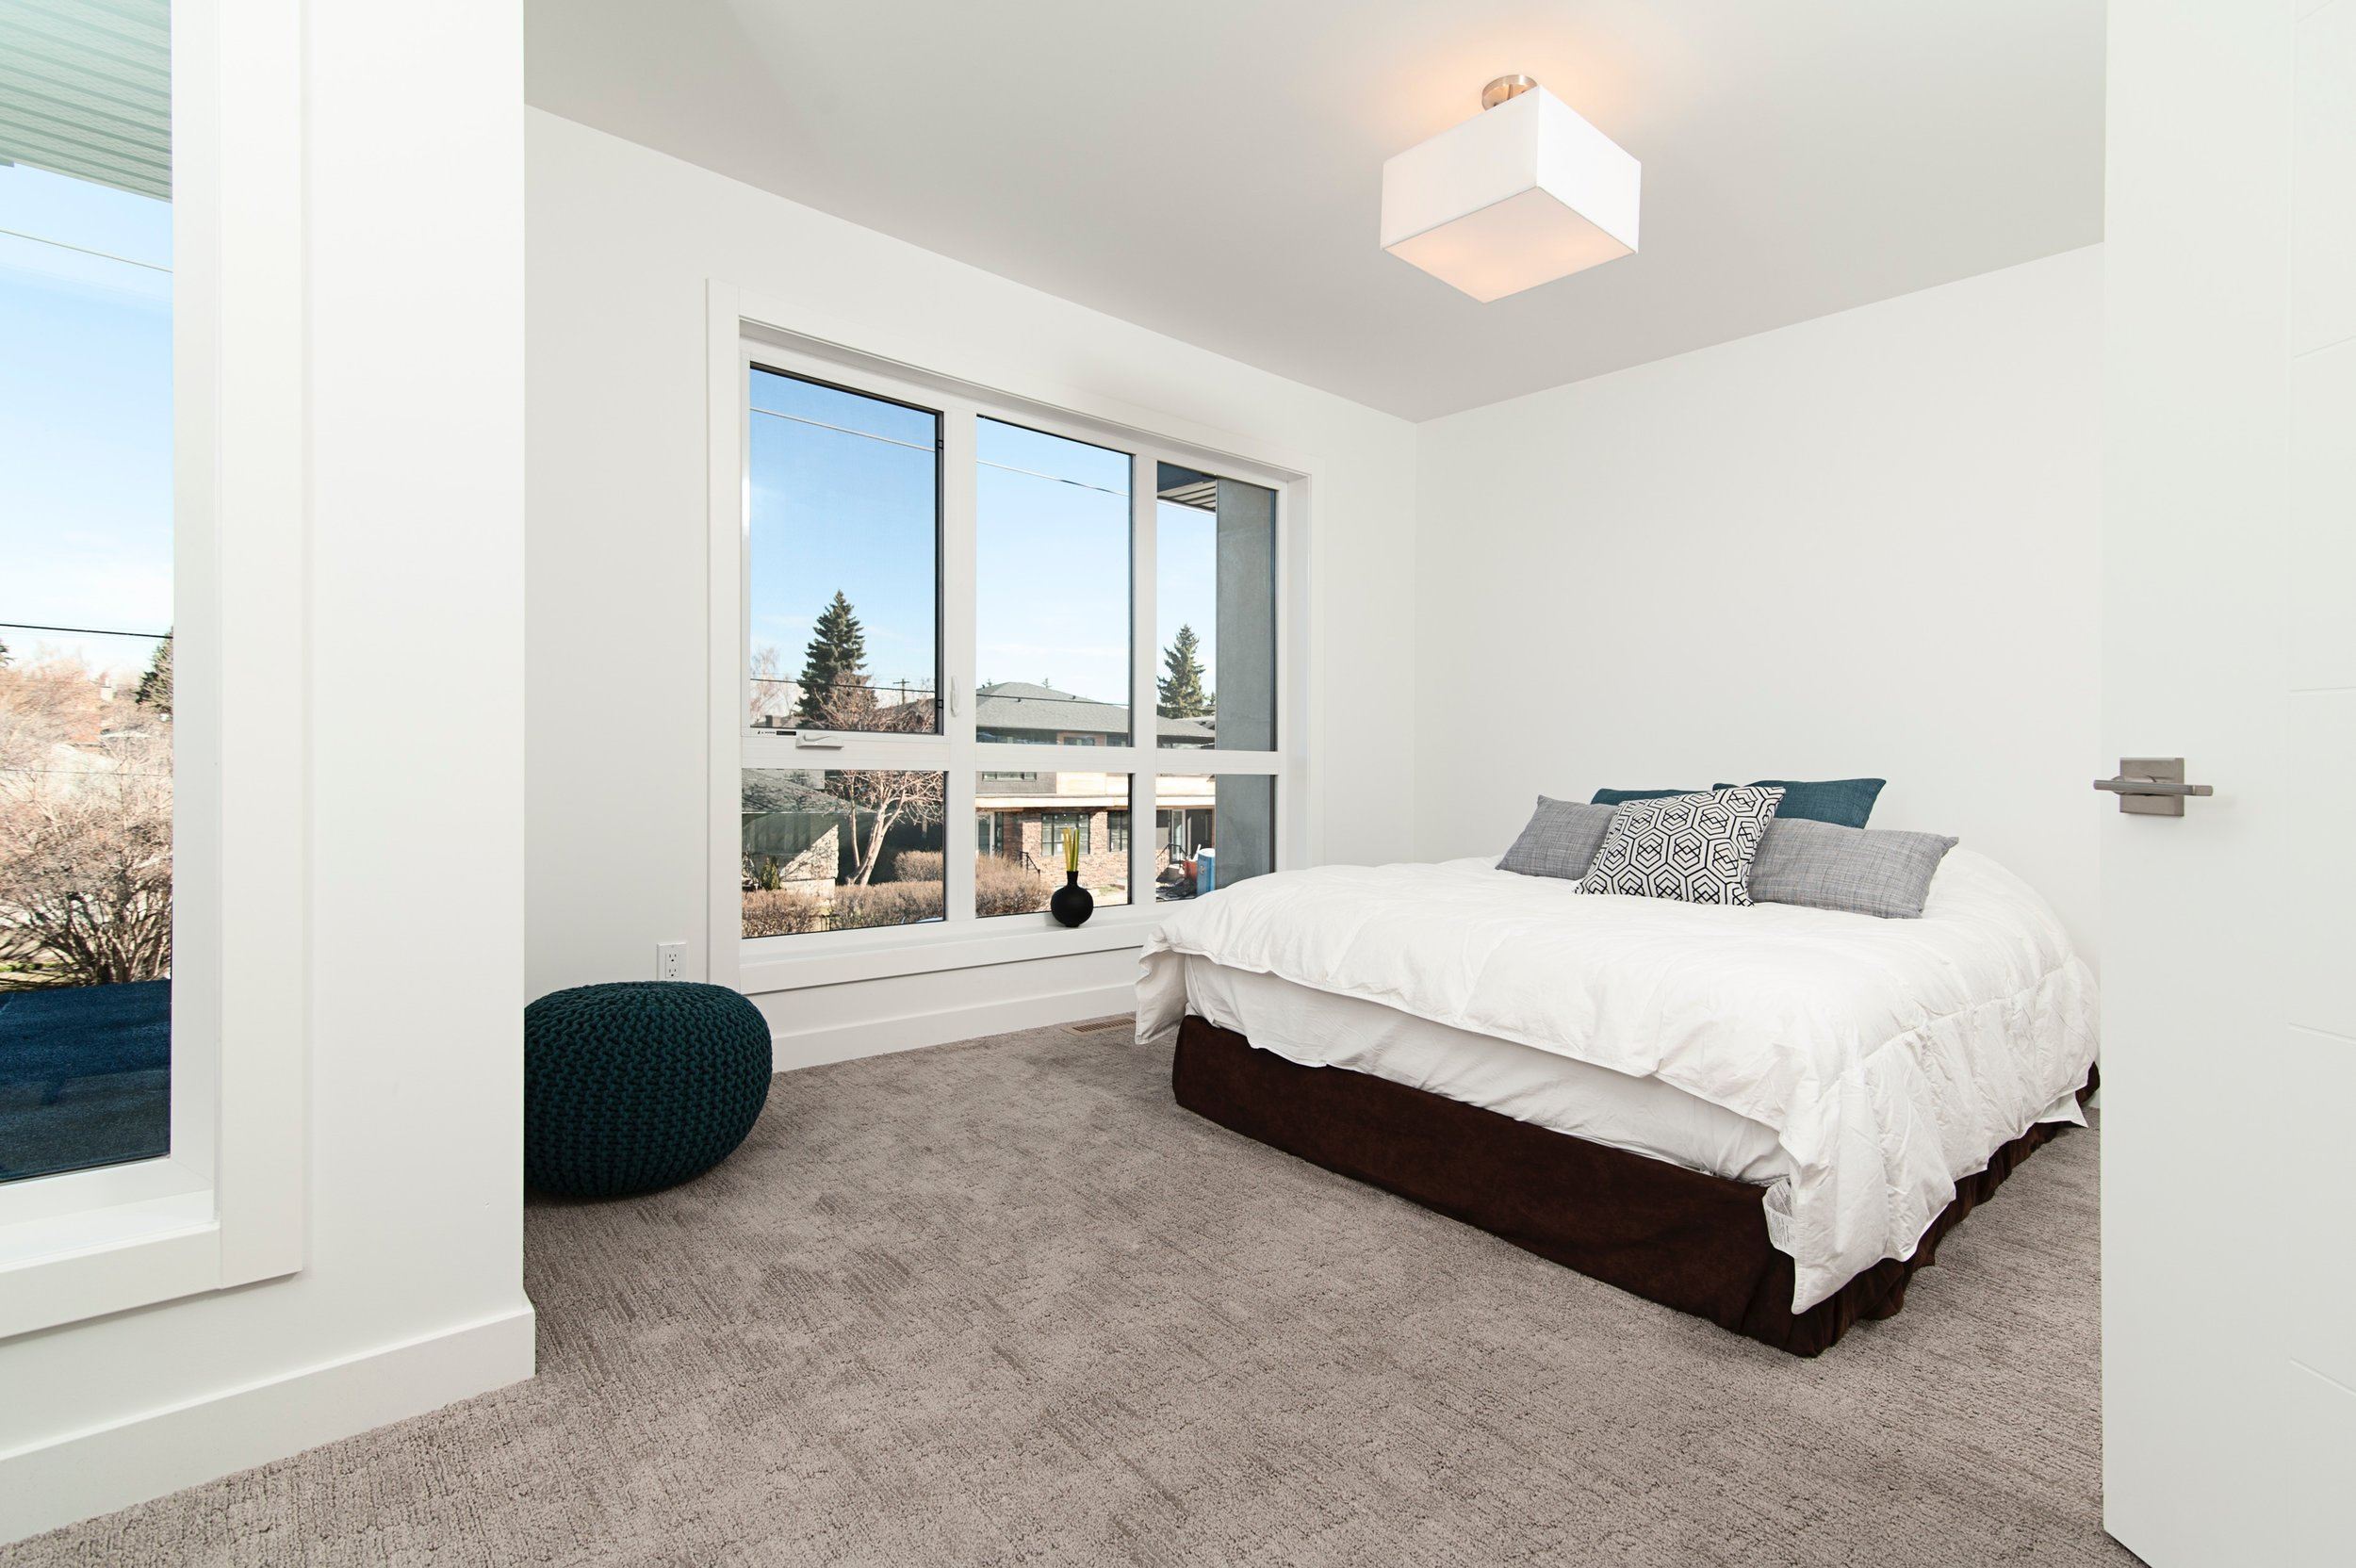 BIZ-LOCATION-real-life-interior-design-compared-to-reality-tv-bedroom-remodel.jpg